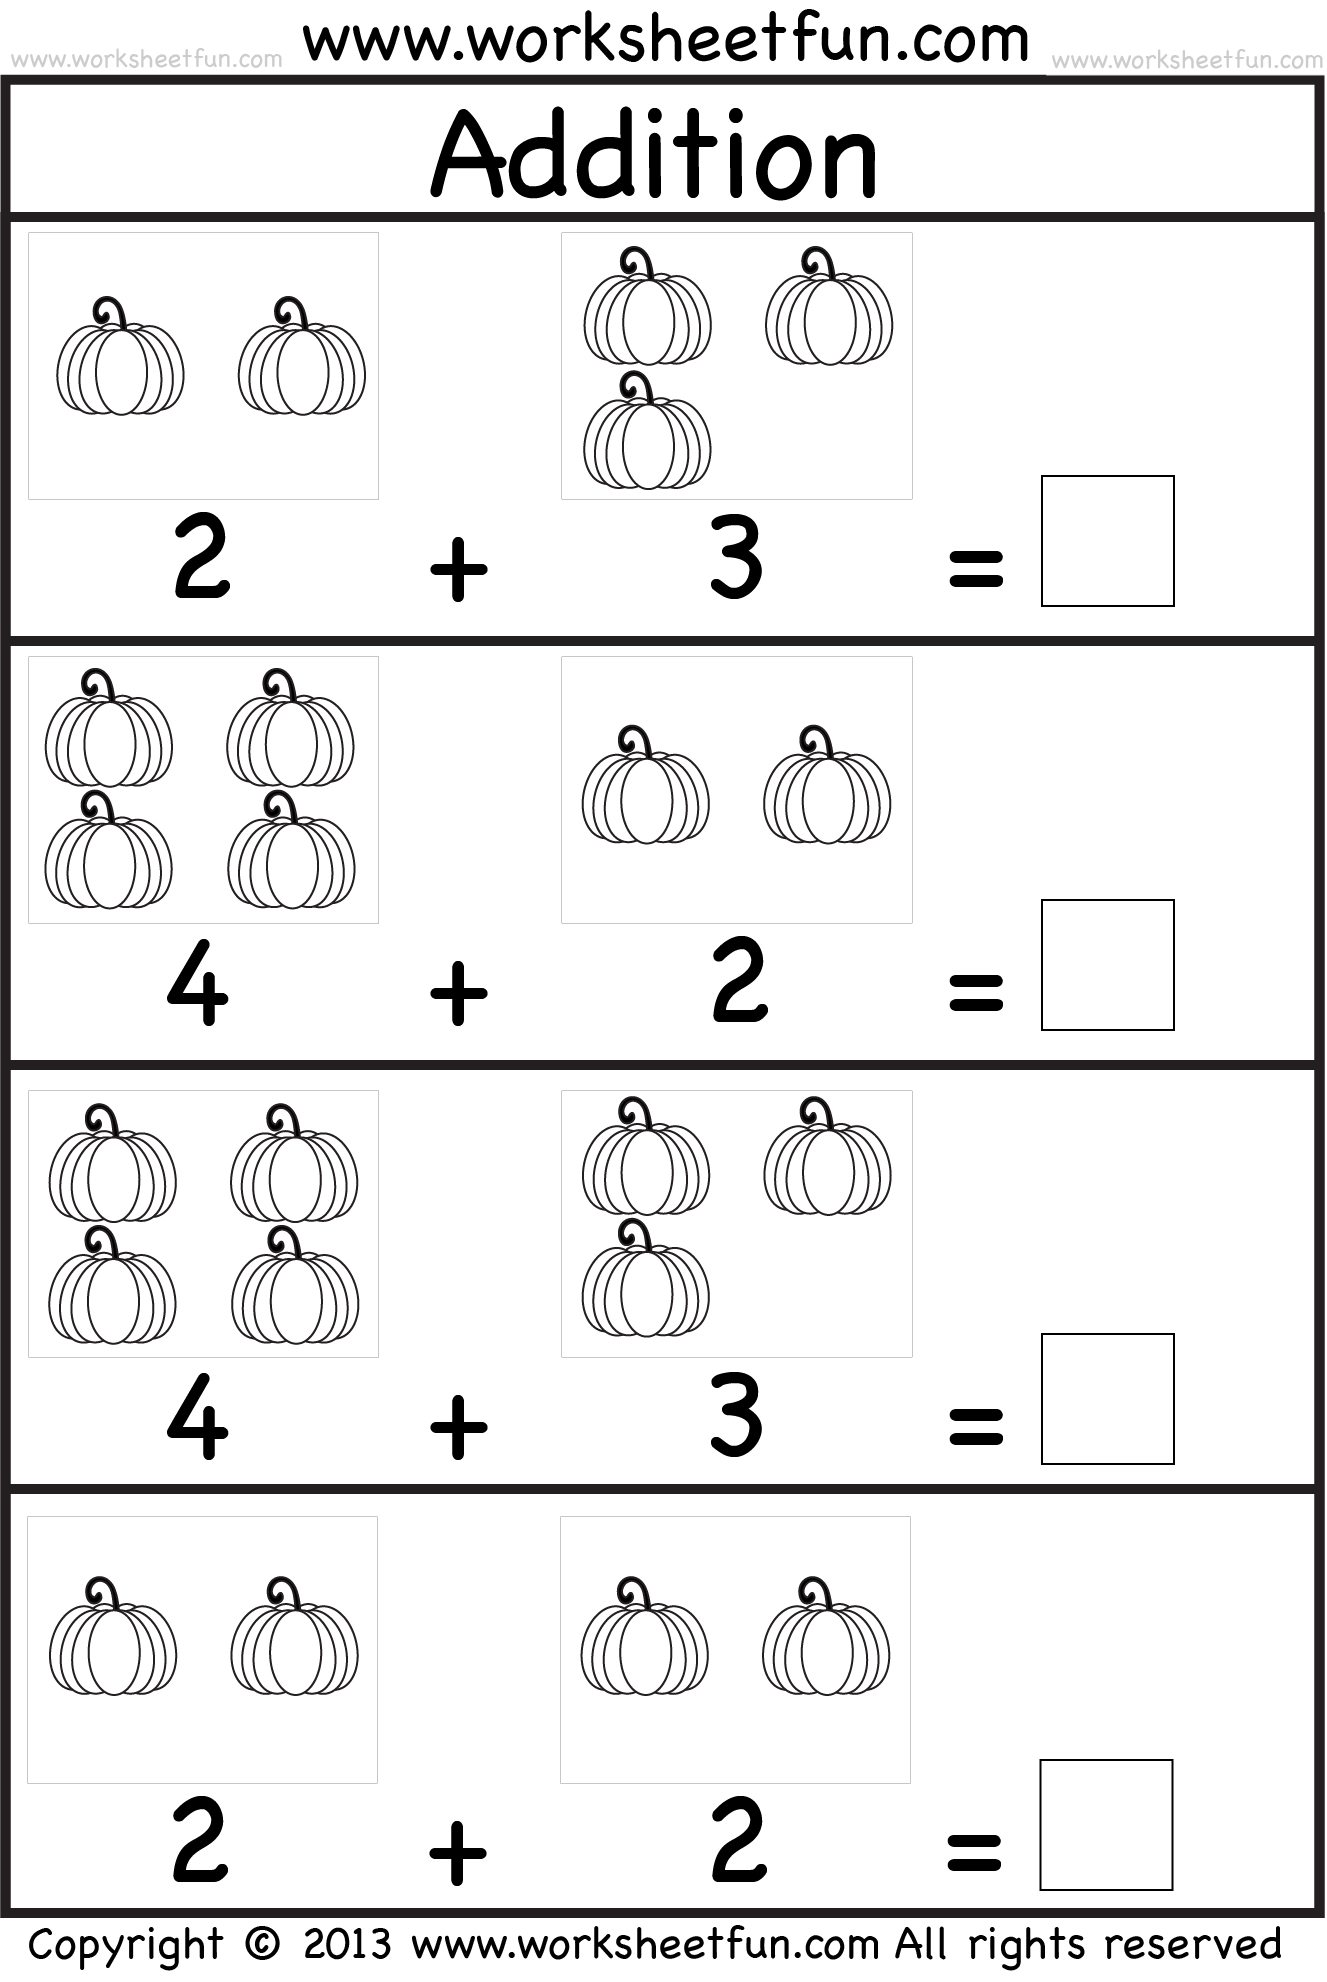 Printables Free Printable Simple Addition Worksheets simple addition worksheets for kindergarten math worksheet synhoff kindergarten